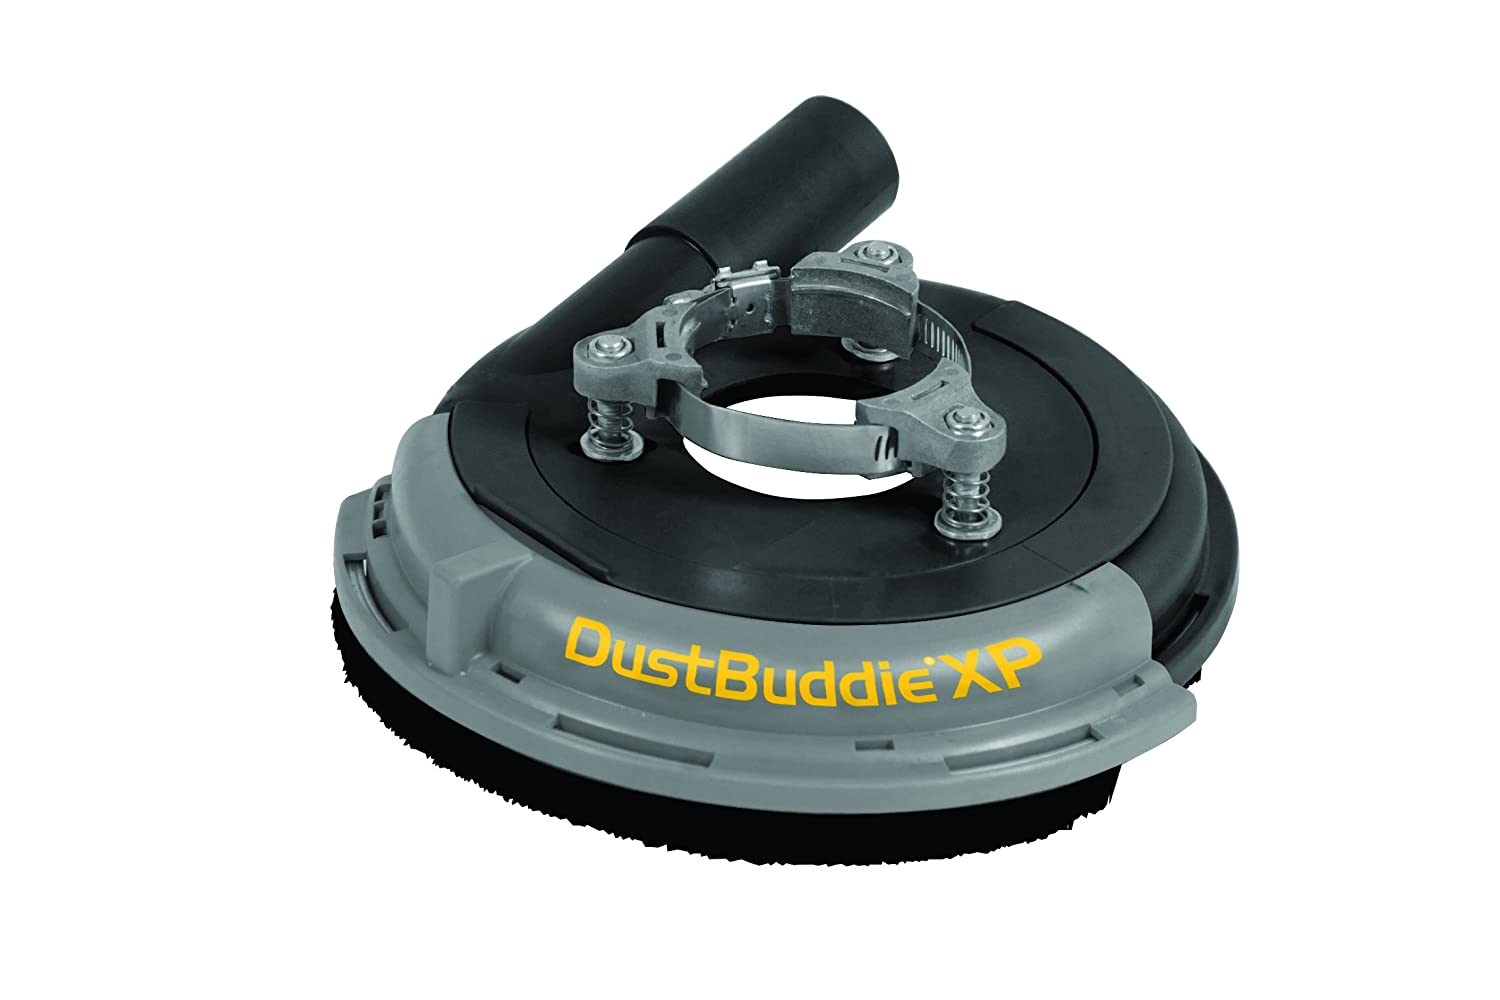 "Dustless Technologies D5850 Dust Buddie XP Universal Dust Control Attachment for Grinders, 7"", Black/Gray"